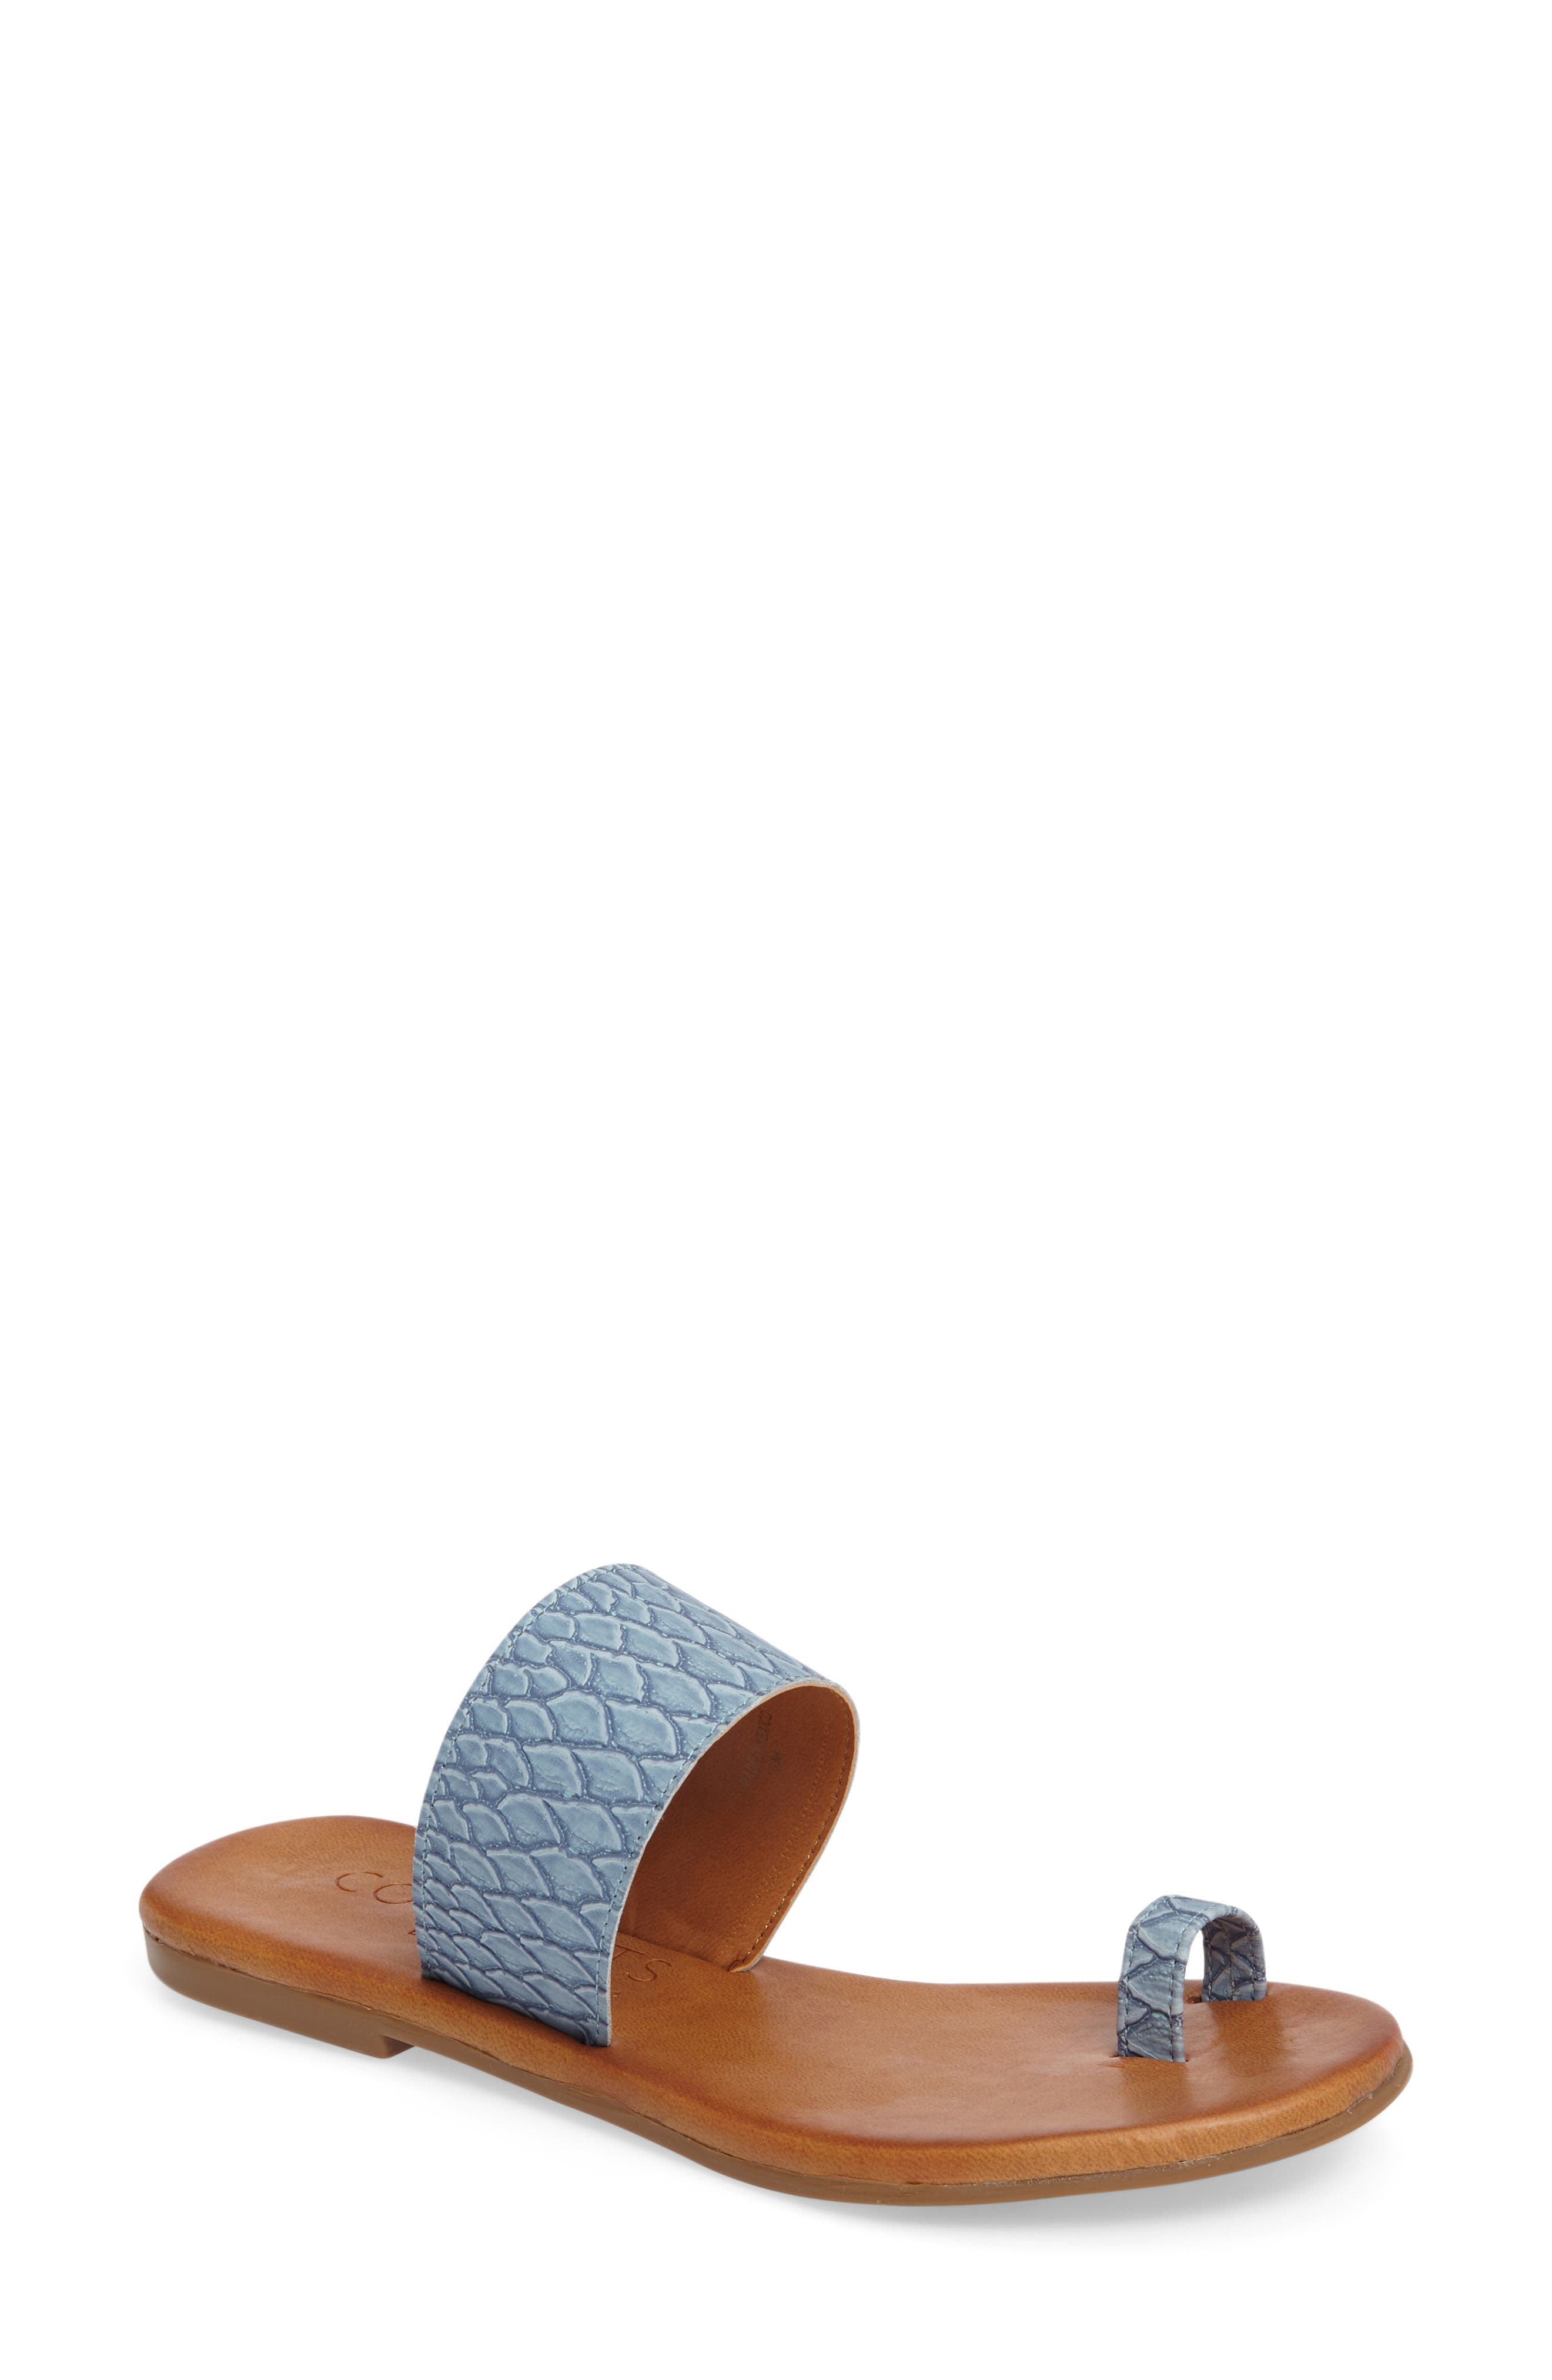 Coconuts by Matisse Freddie Slide Sandal,                         Main,                         color, Dusty Blue Leather